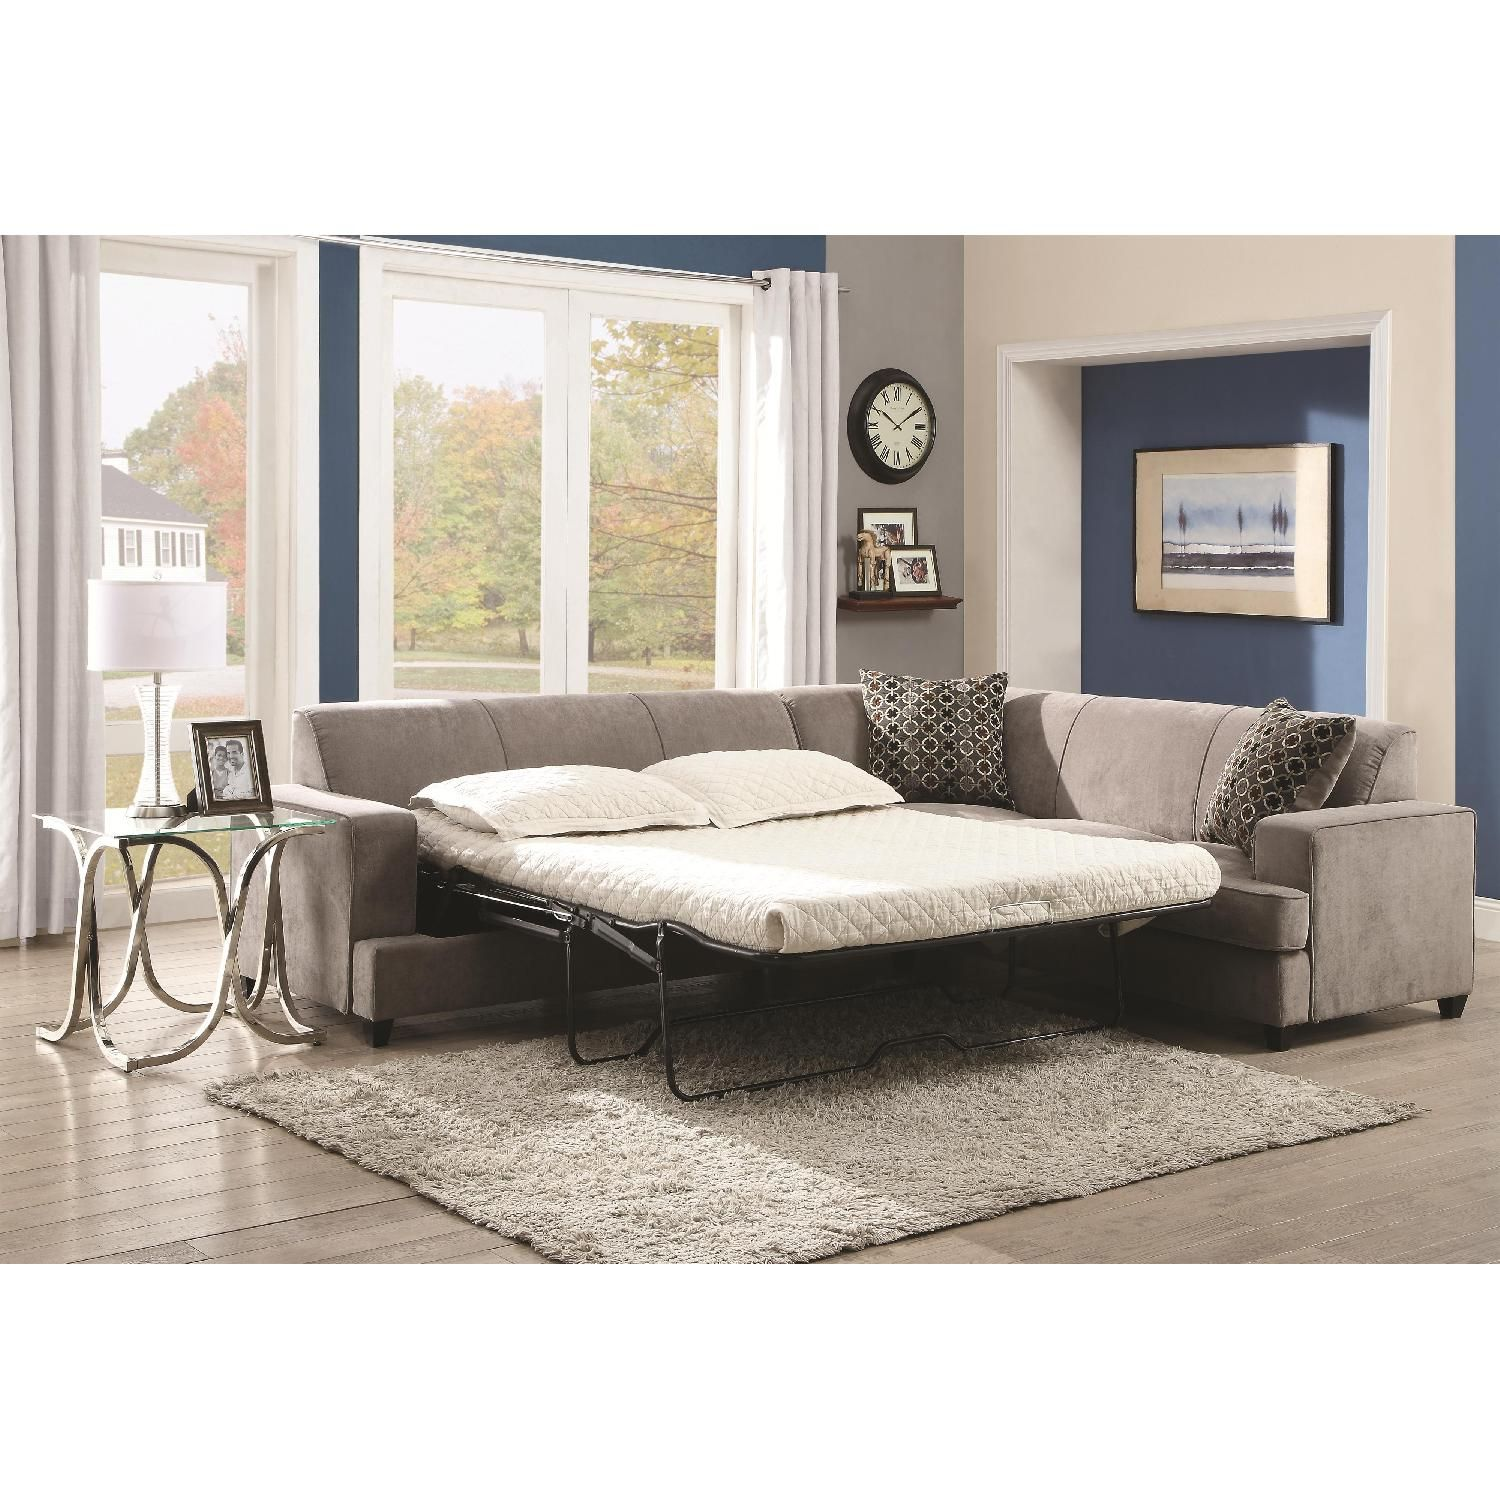 L Shaped Couch With Pullout Sofa Bed Aptdeco Grey Sectional Sofa Sectional Sleeper Sofa Sectional Sofa